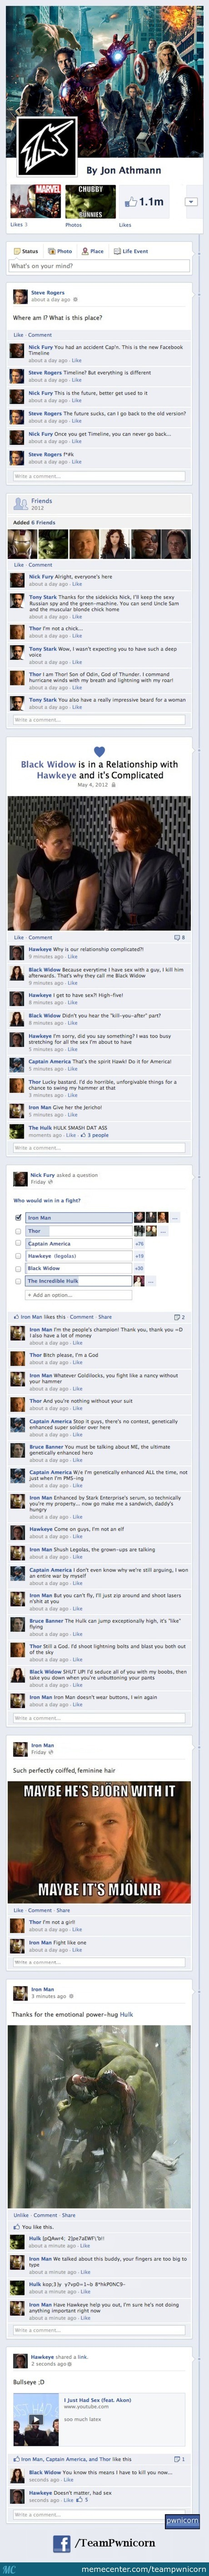 The Avengers On Facebook